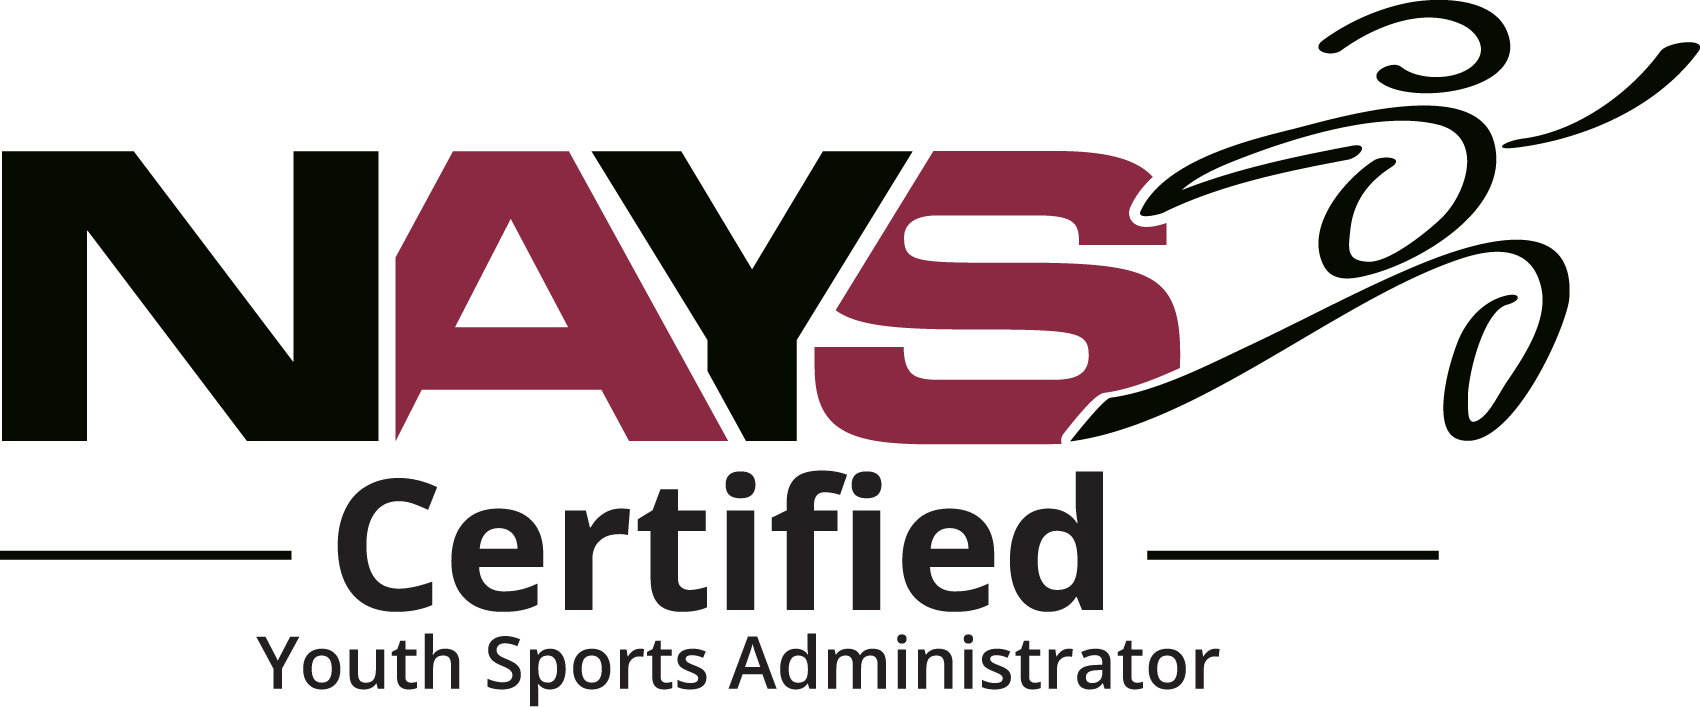 CYSA logo youth sports certification